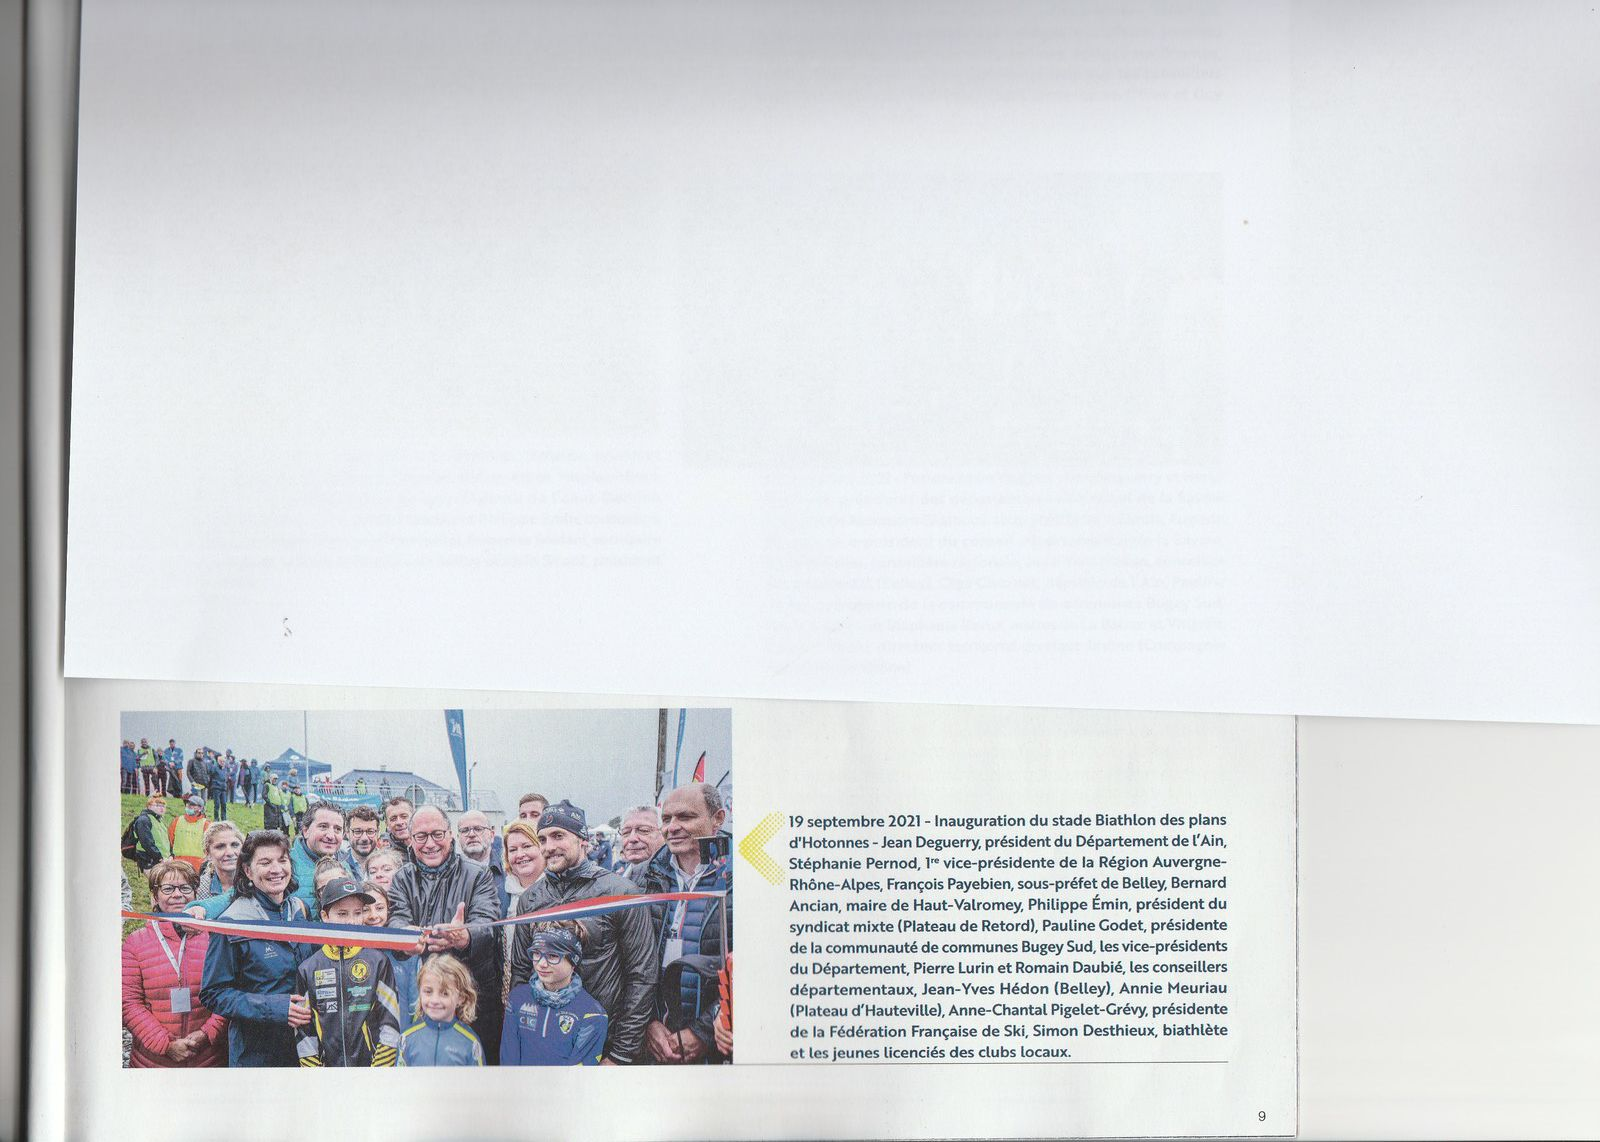 Article page 9